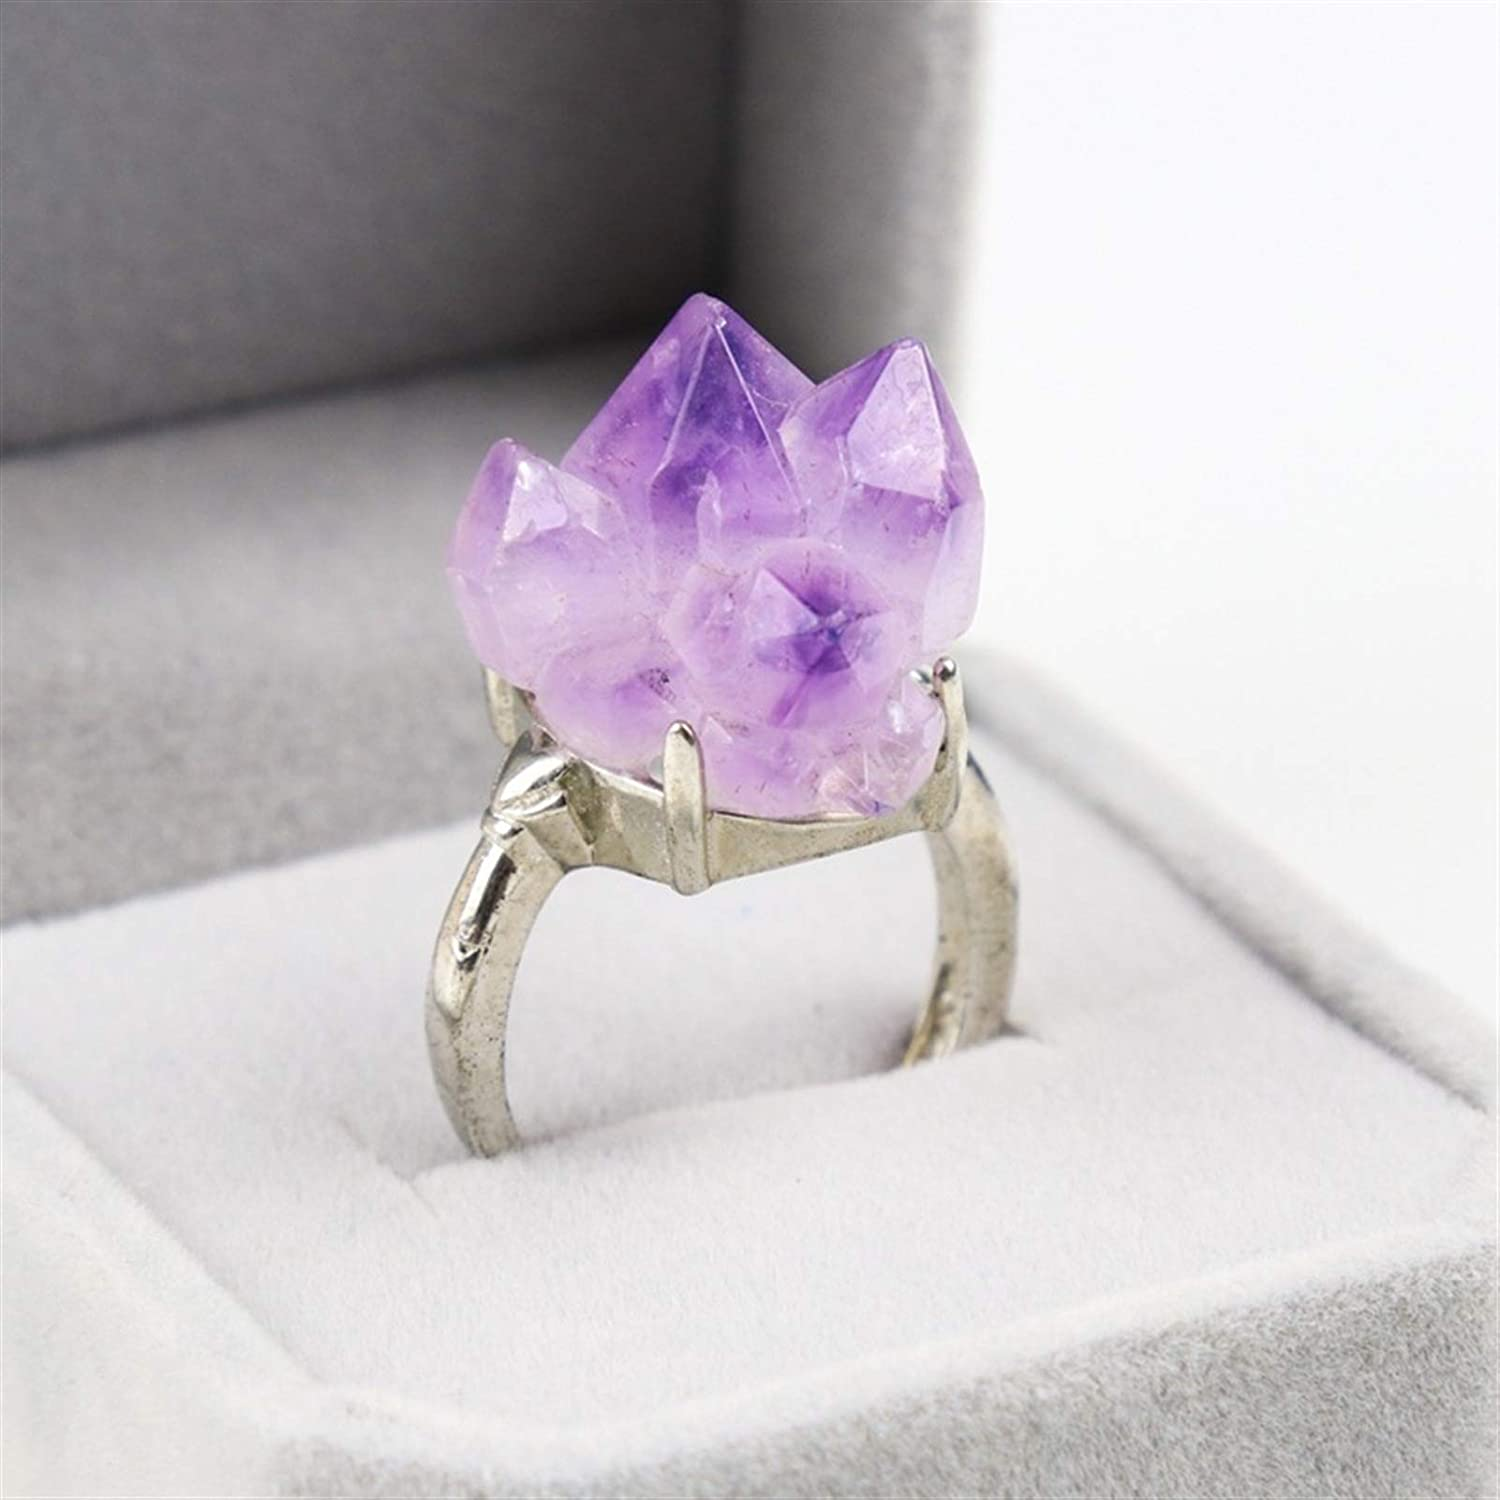 TWEITIE Natural Amethyst Crystal Ring It is very popular Decorati for Ultra-Cheap Deals Jewelry Stone